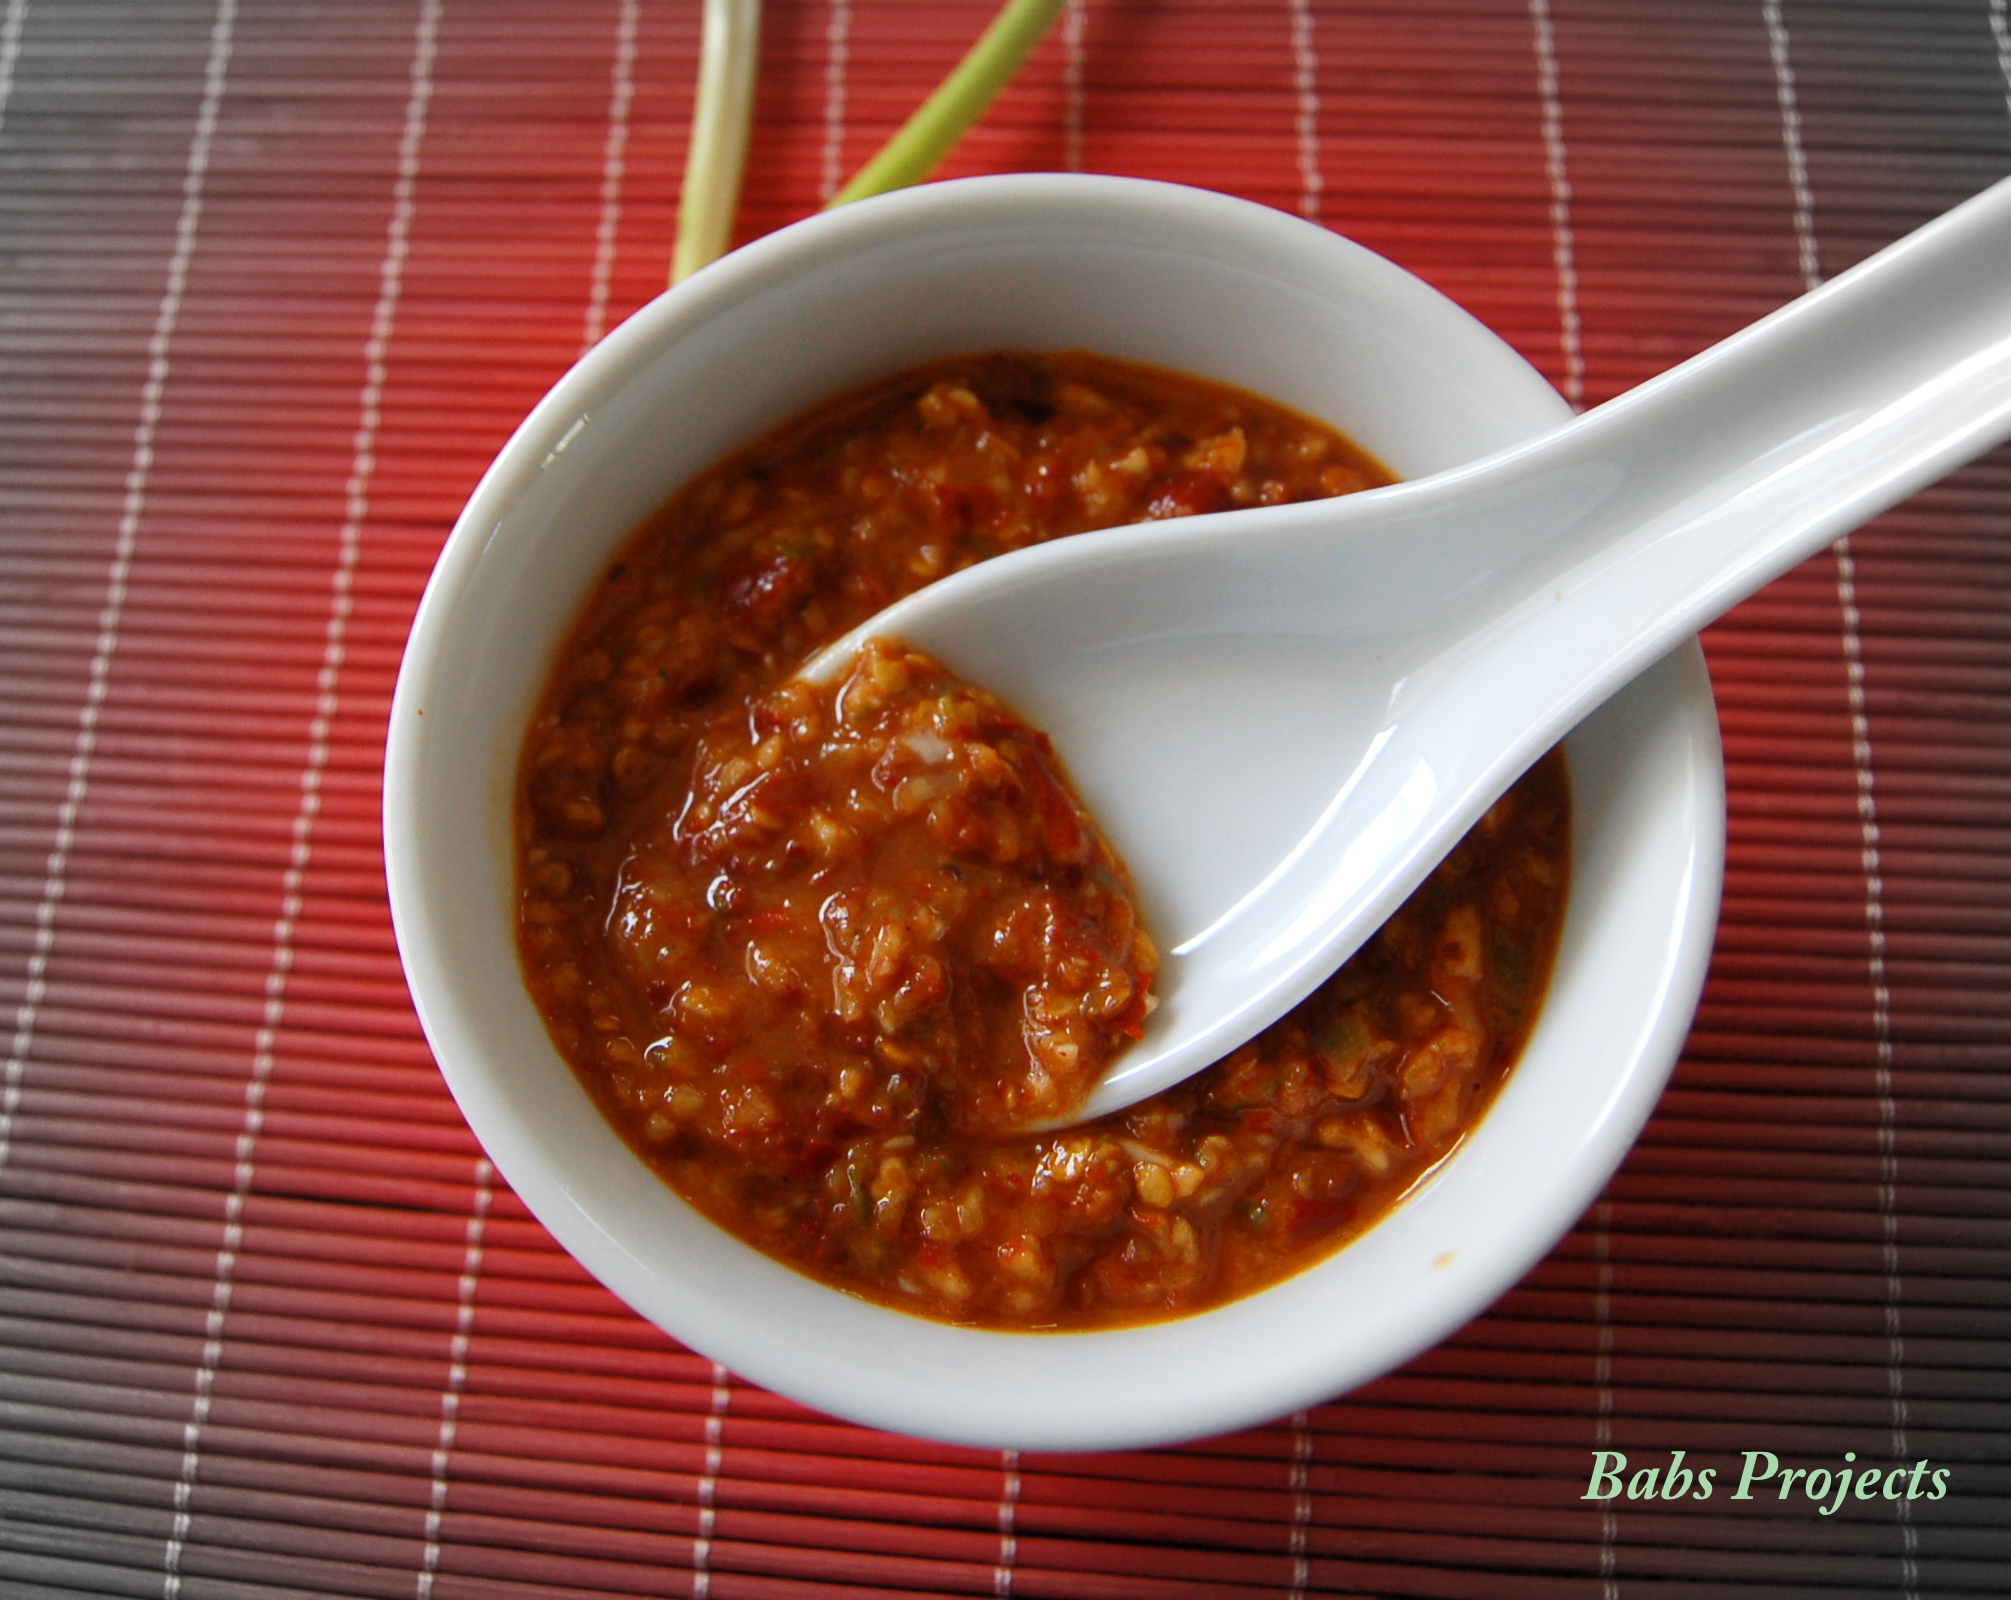 Asian Chili and Garlic Paste - Babs Projects